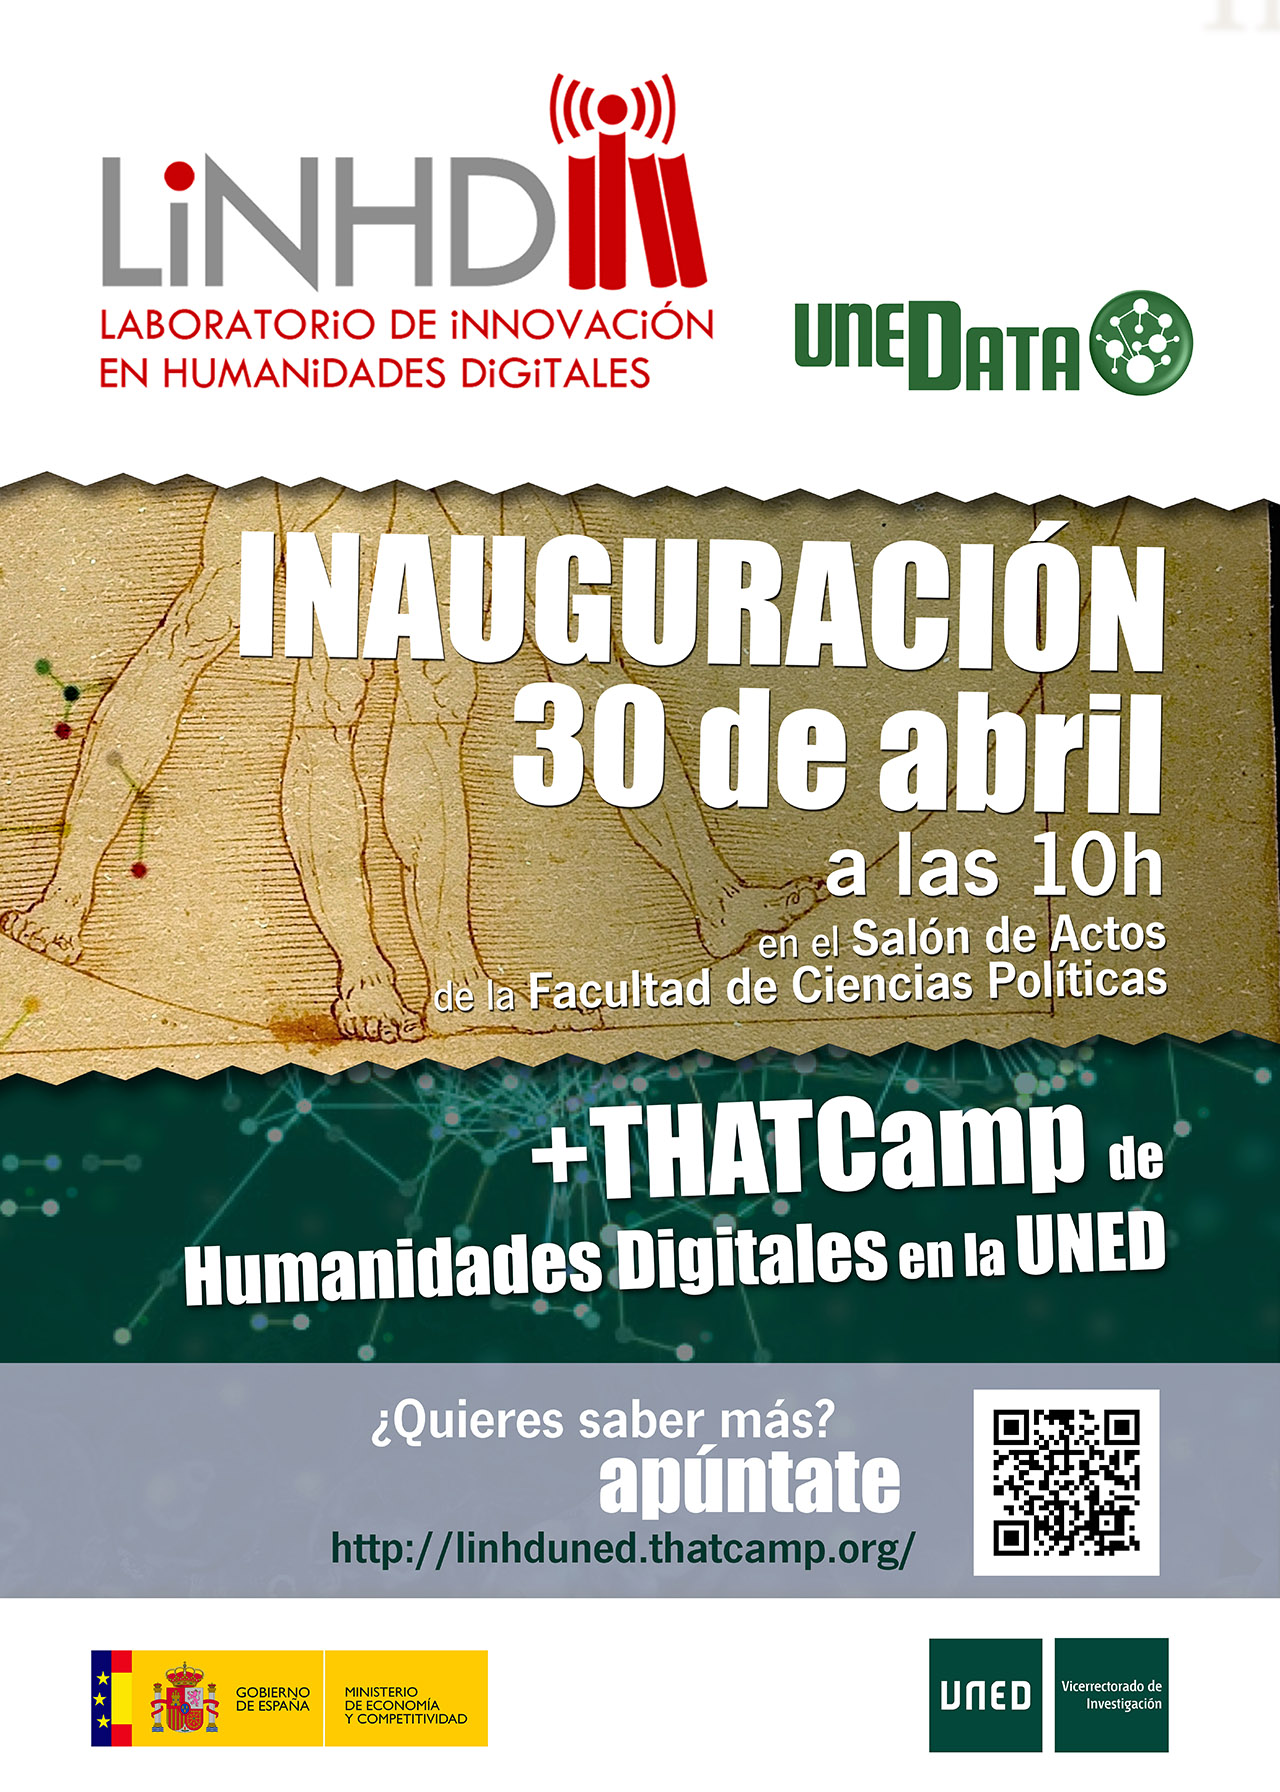 THATCamp LINHD UNED 2014